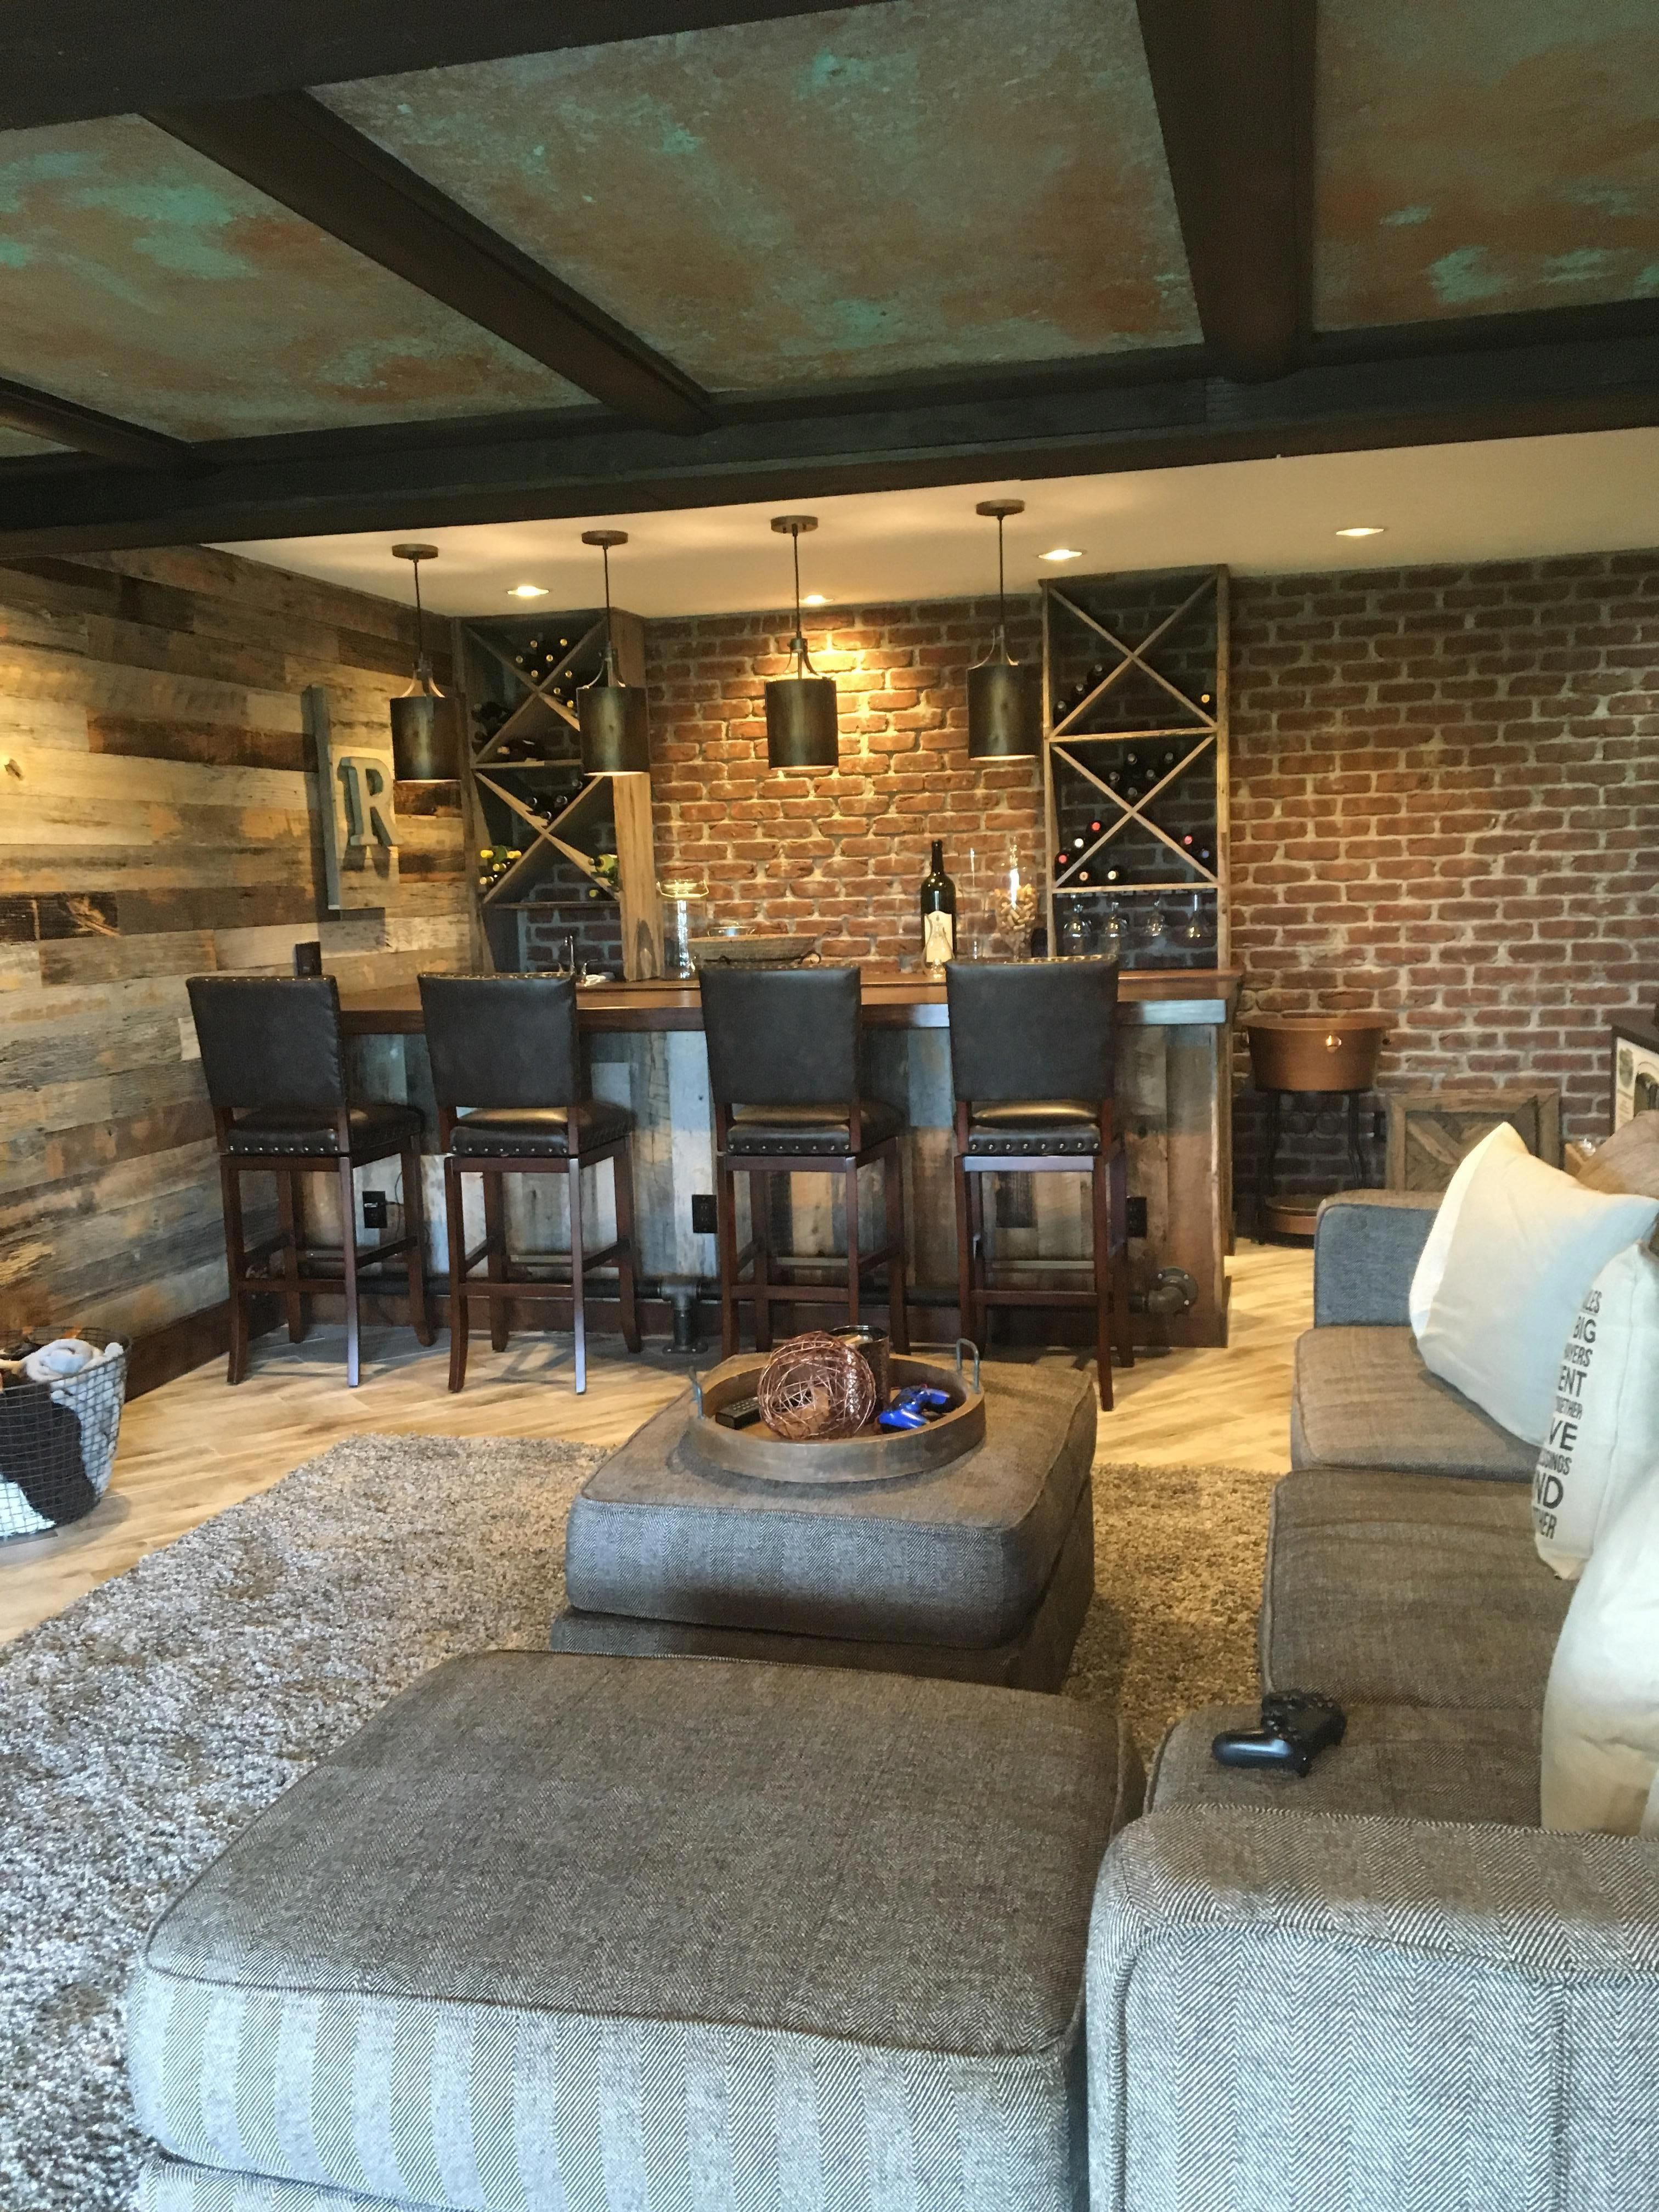 70 living room home theater ideas 2021 in 2020 rustic on best living room colors 2021 id=37641